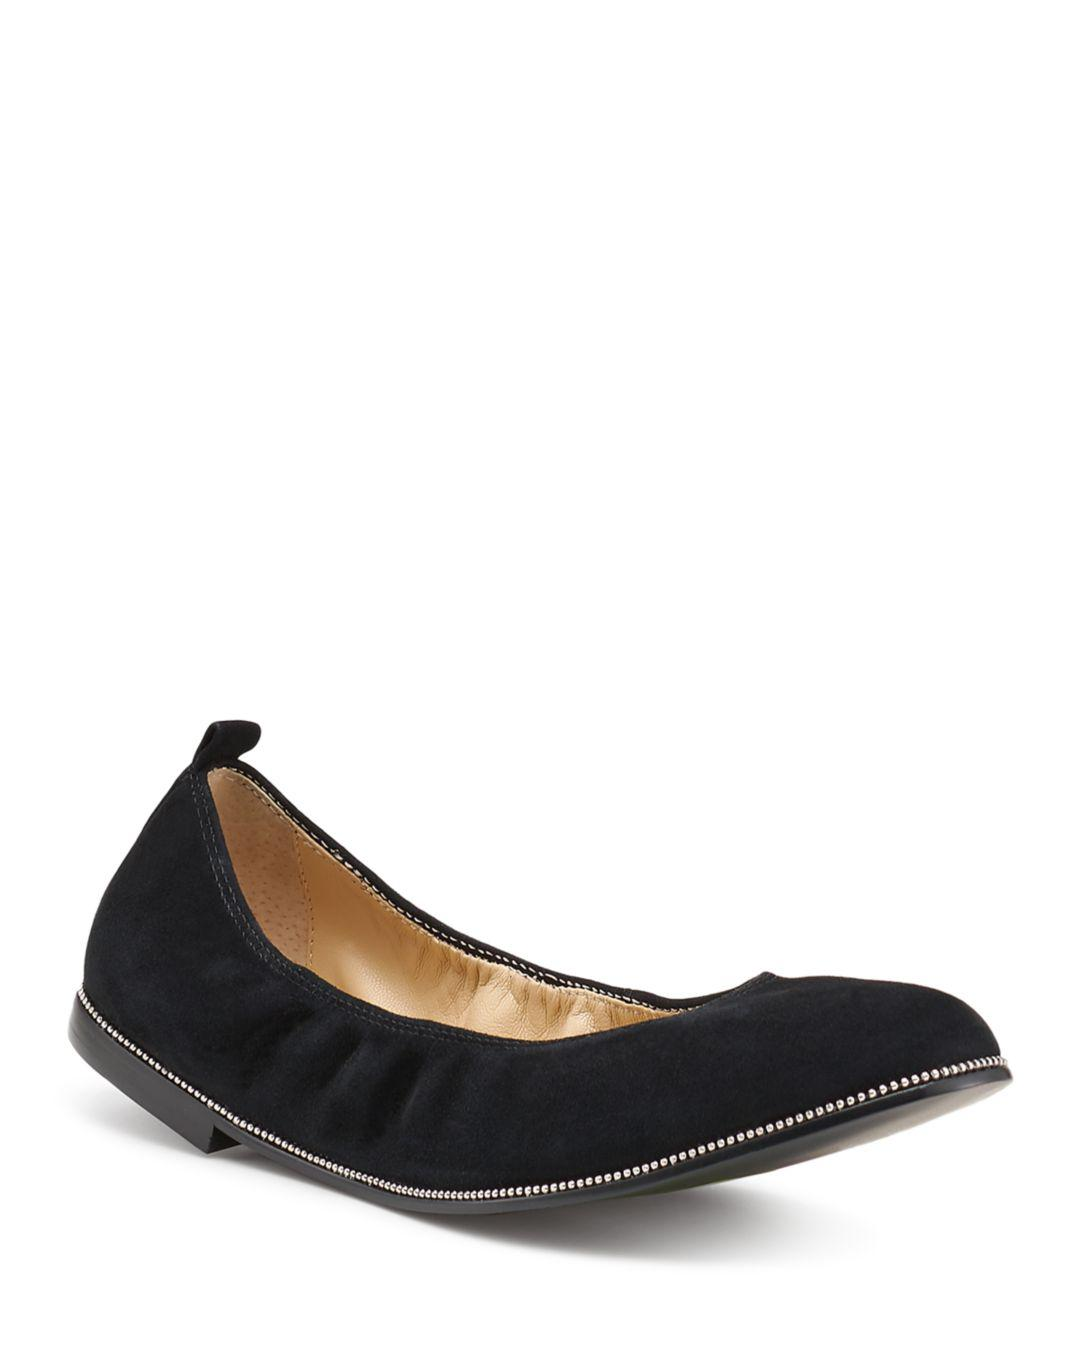 f50336815f2b3c Lyst - Botkier Women s Mason Leather Ballet Flats in Black - Save ...